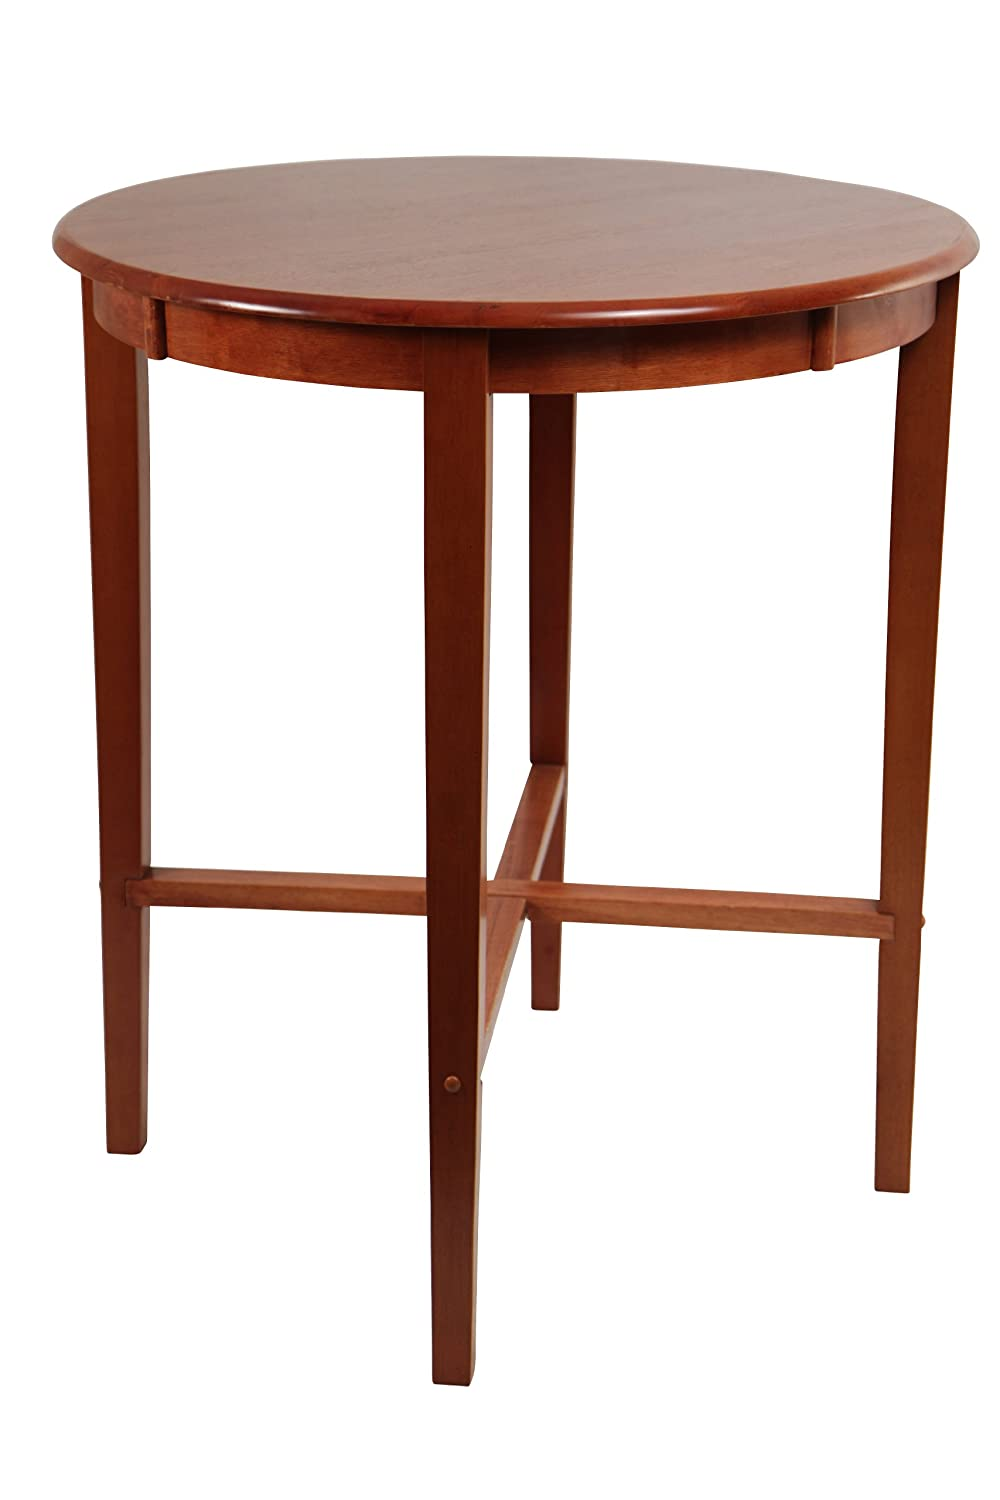 Amazon.com: Boraam 70564 Round Pub Table, 42 Inch, Cherry: Kitchen U0026 Dining